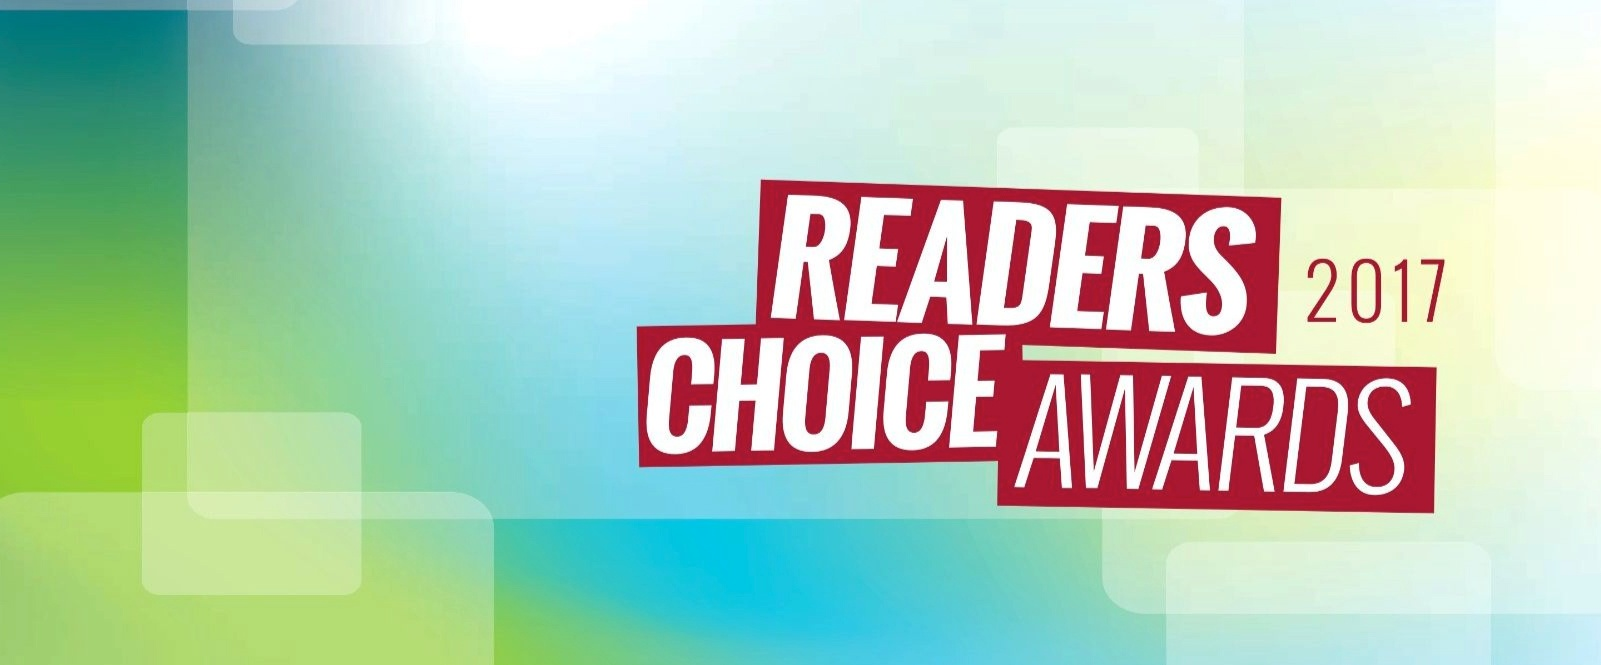 Aplin wins Readers' Choice Award for Executive Recruitment